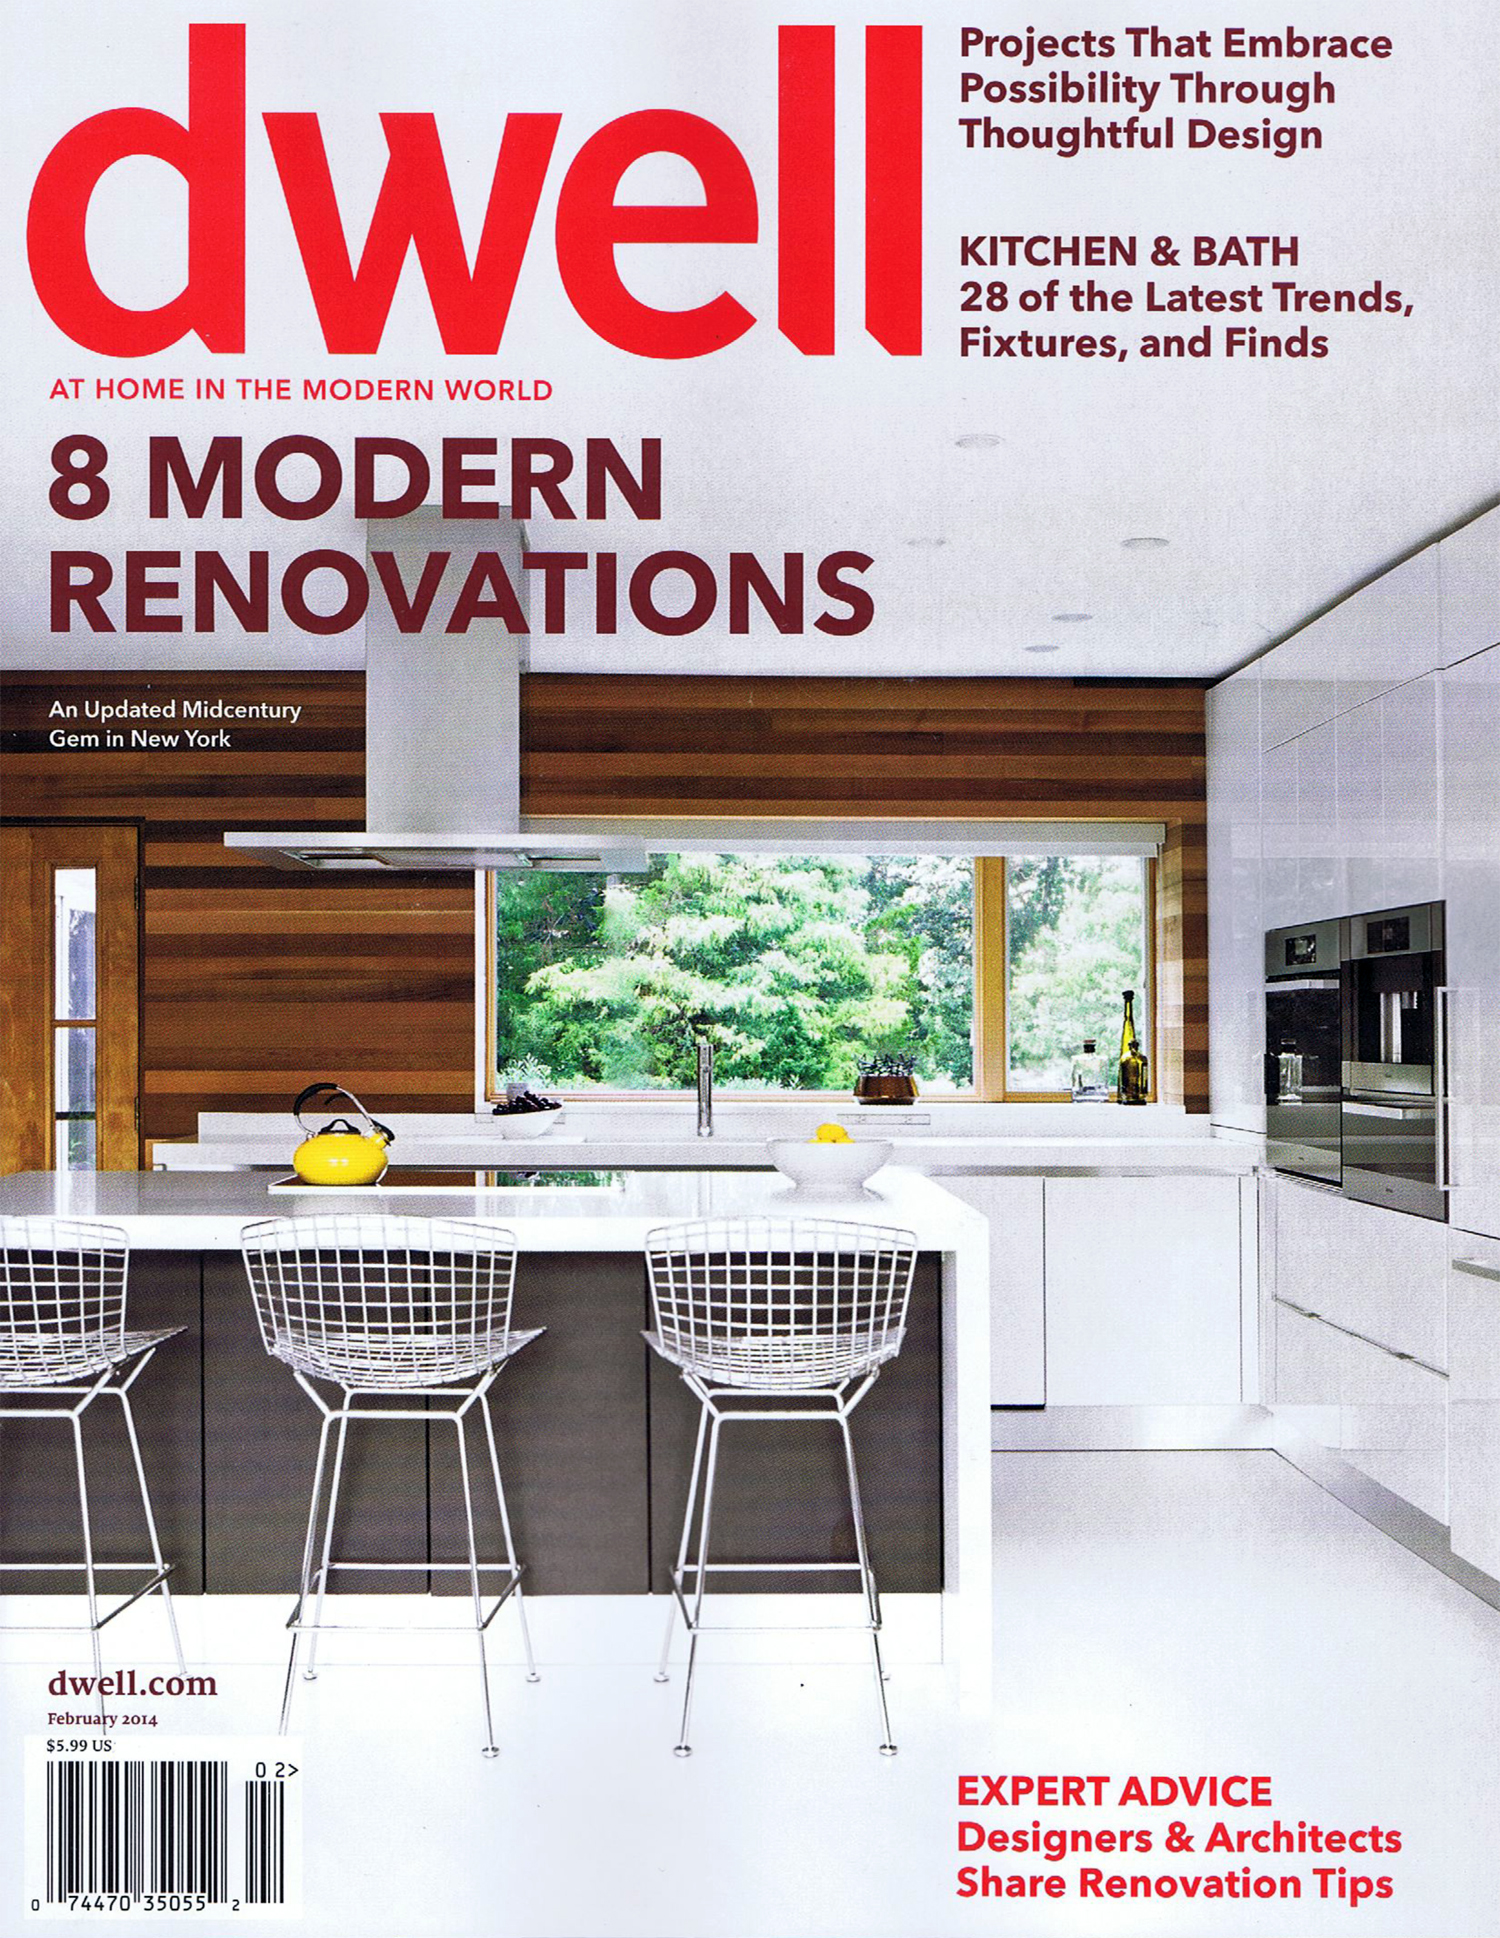 Dwell features Jeff King & Co